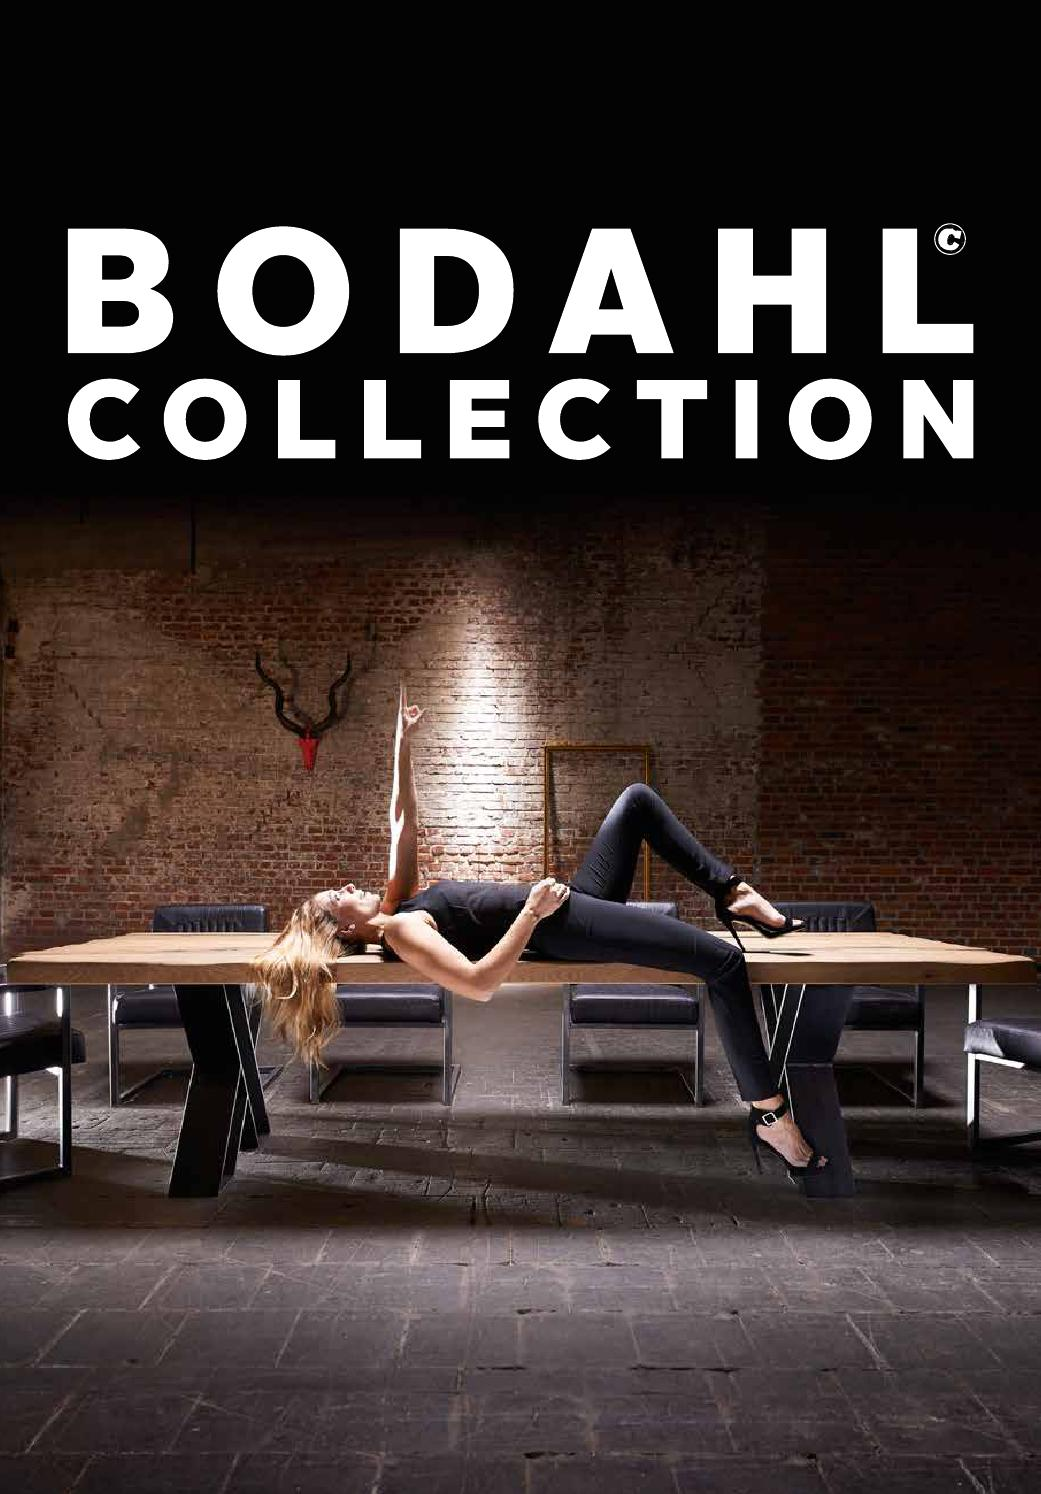 bodahl collection 2016 by pick up issuu. Black Bedroom Furniture Sets. Home Design Ideas